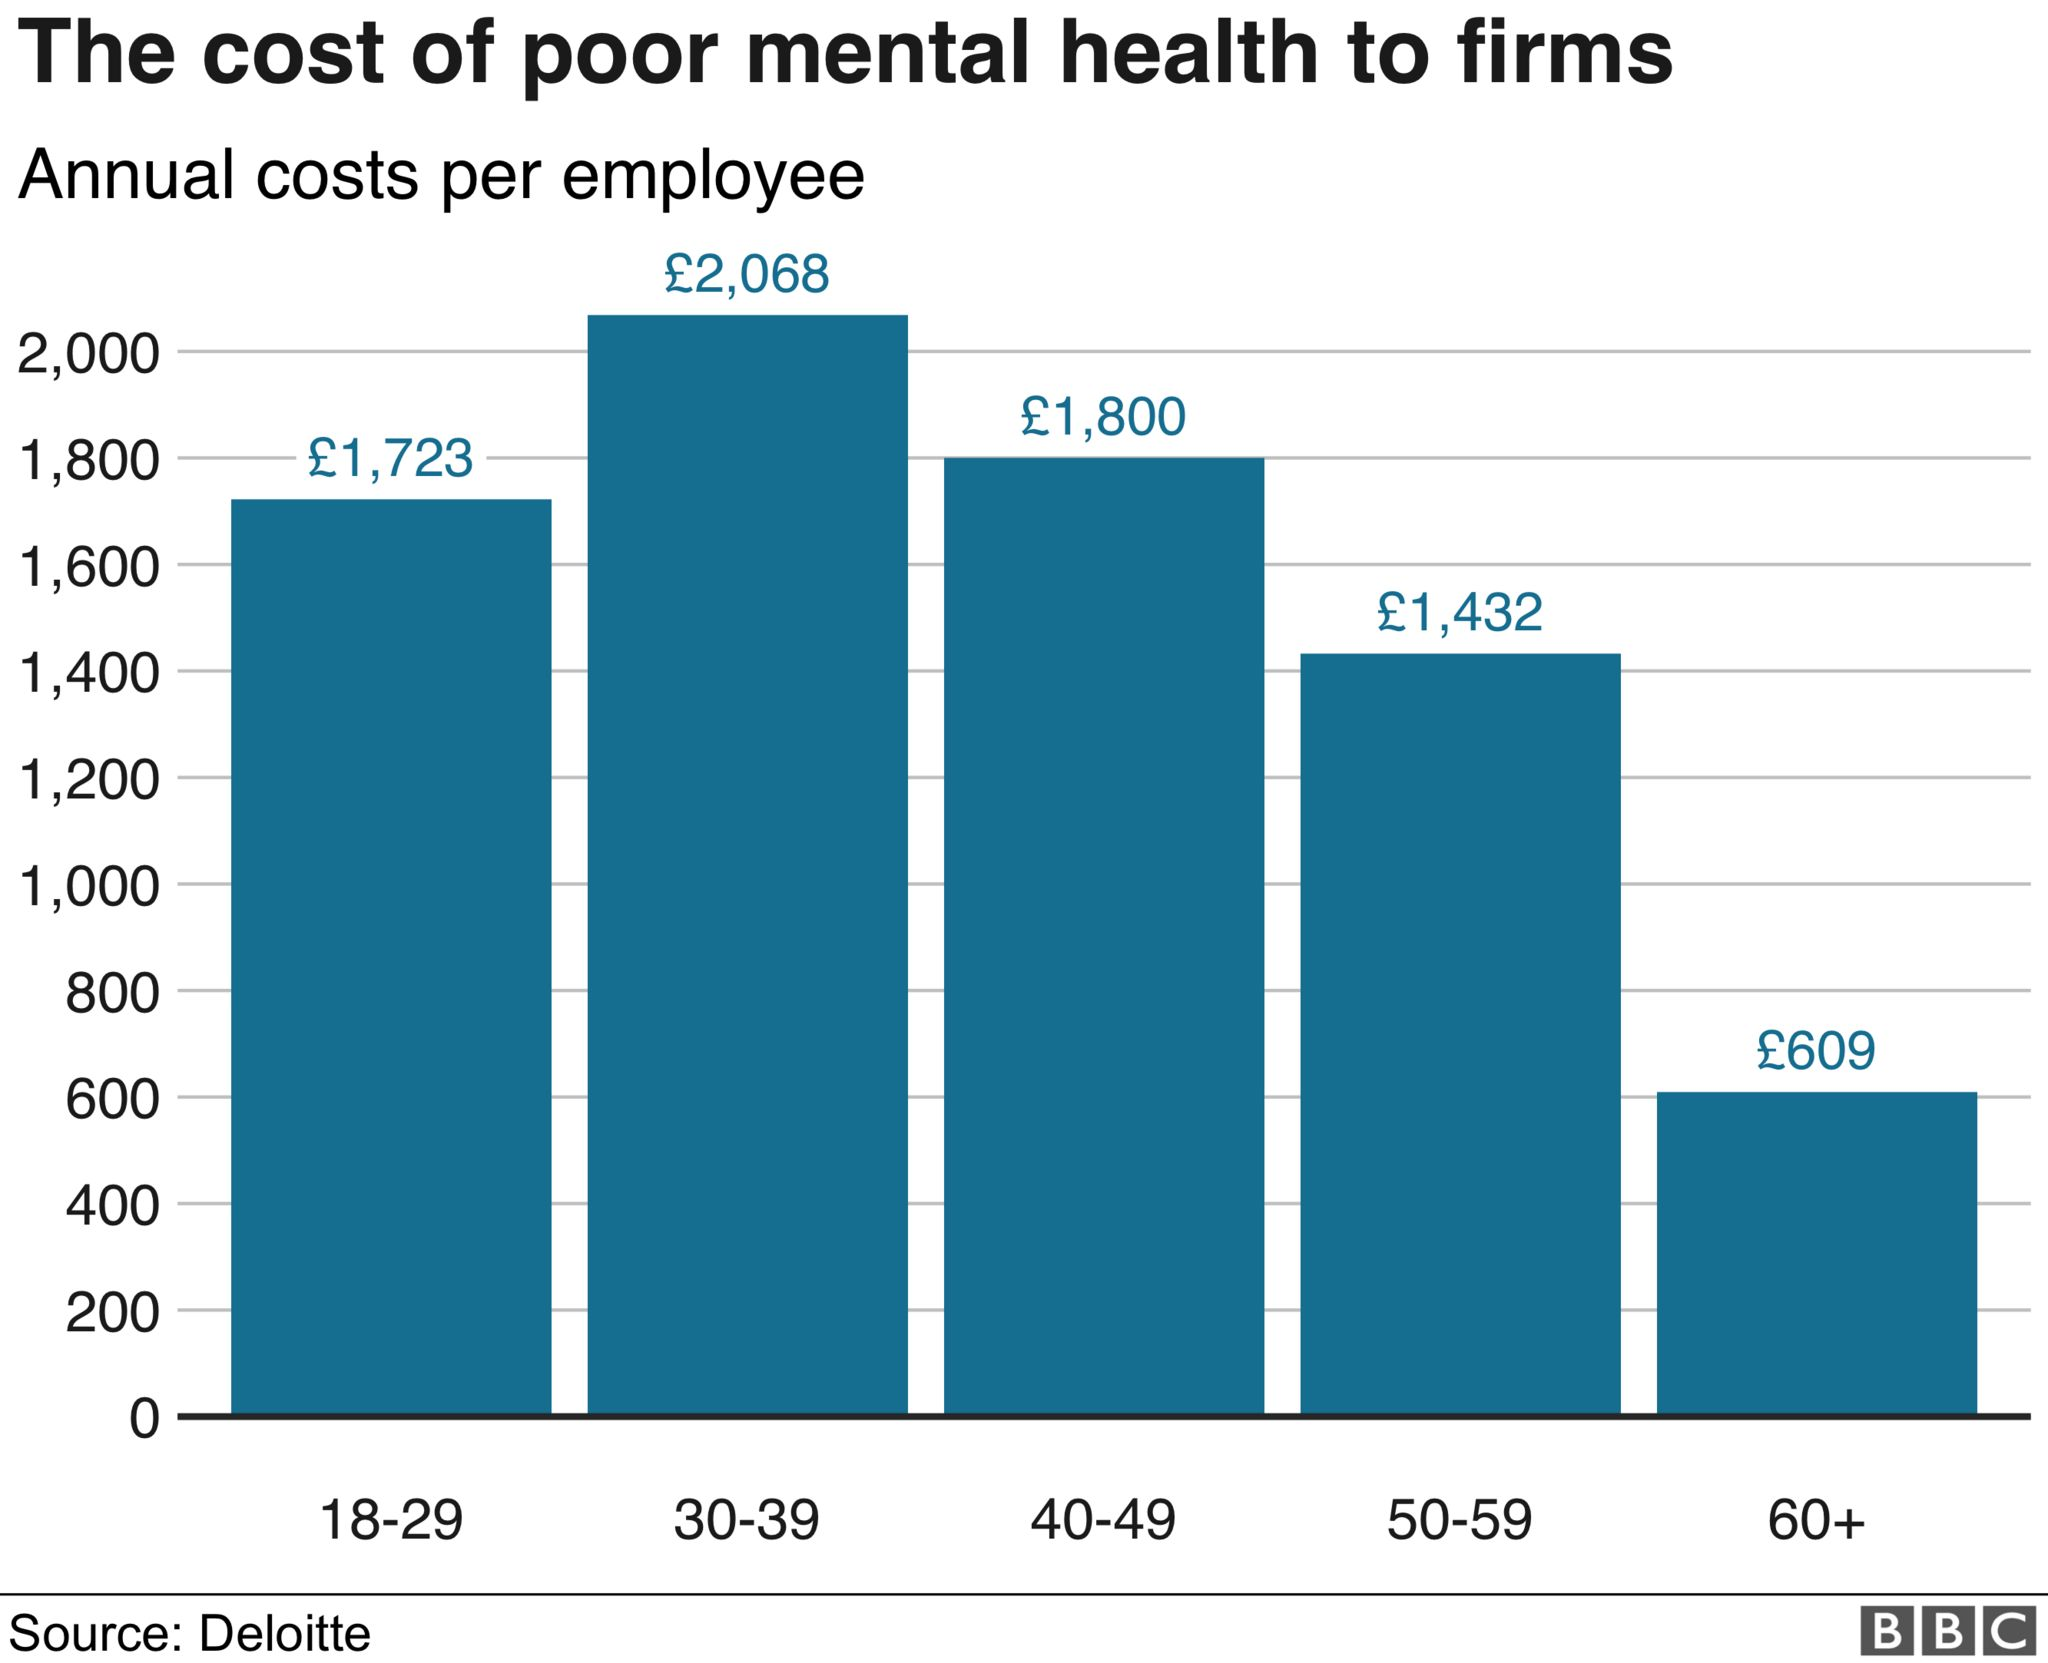 Chart on average costs per employee of mental health conditions per age